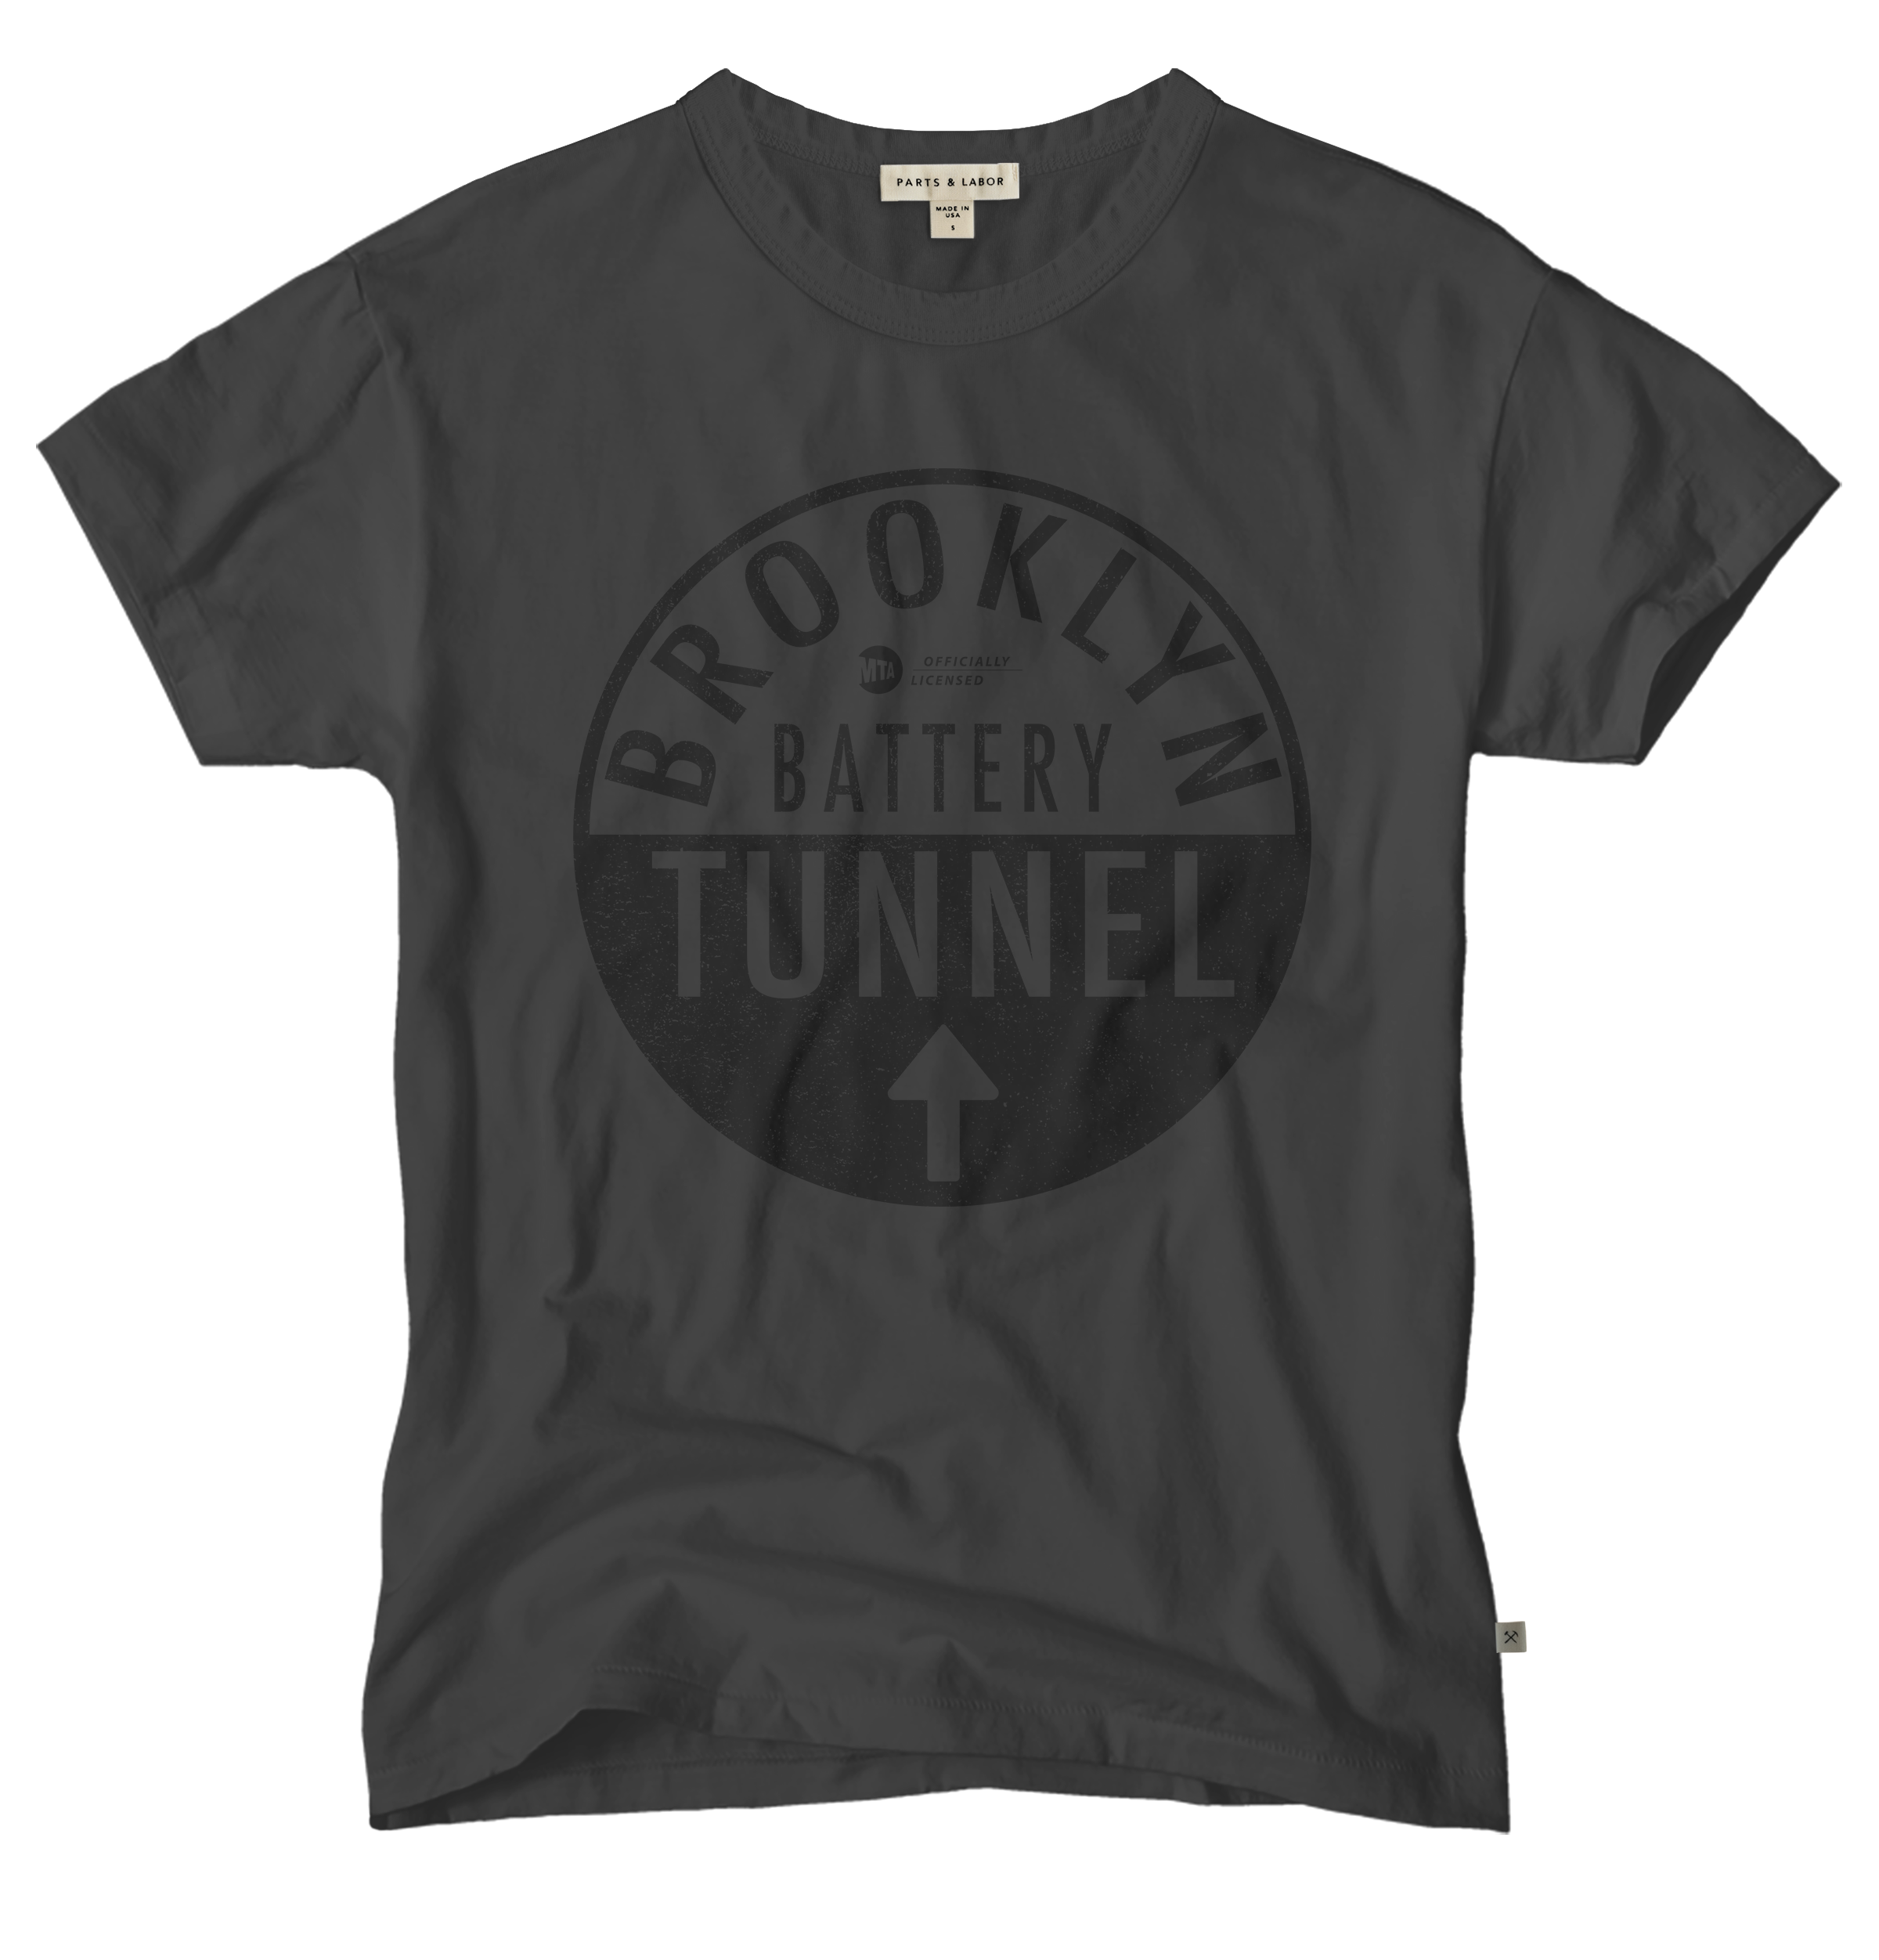 MTA Brooklyn Battery Tunnel Vintage Graphic T-Shirt - Graphite